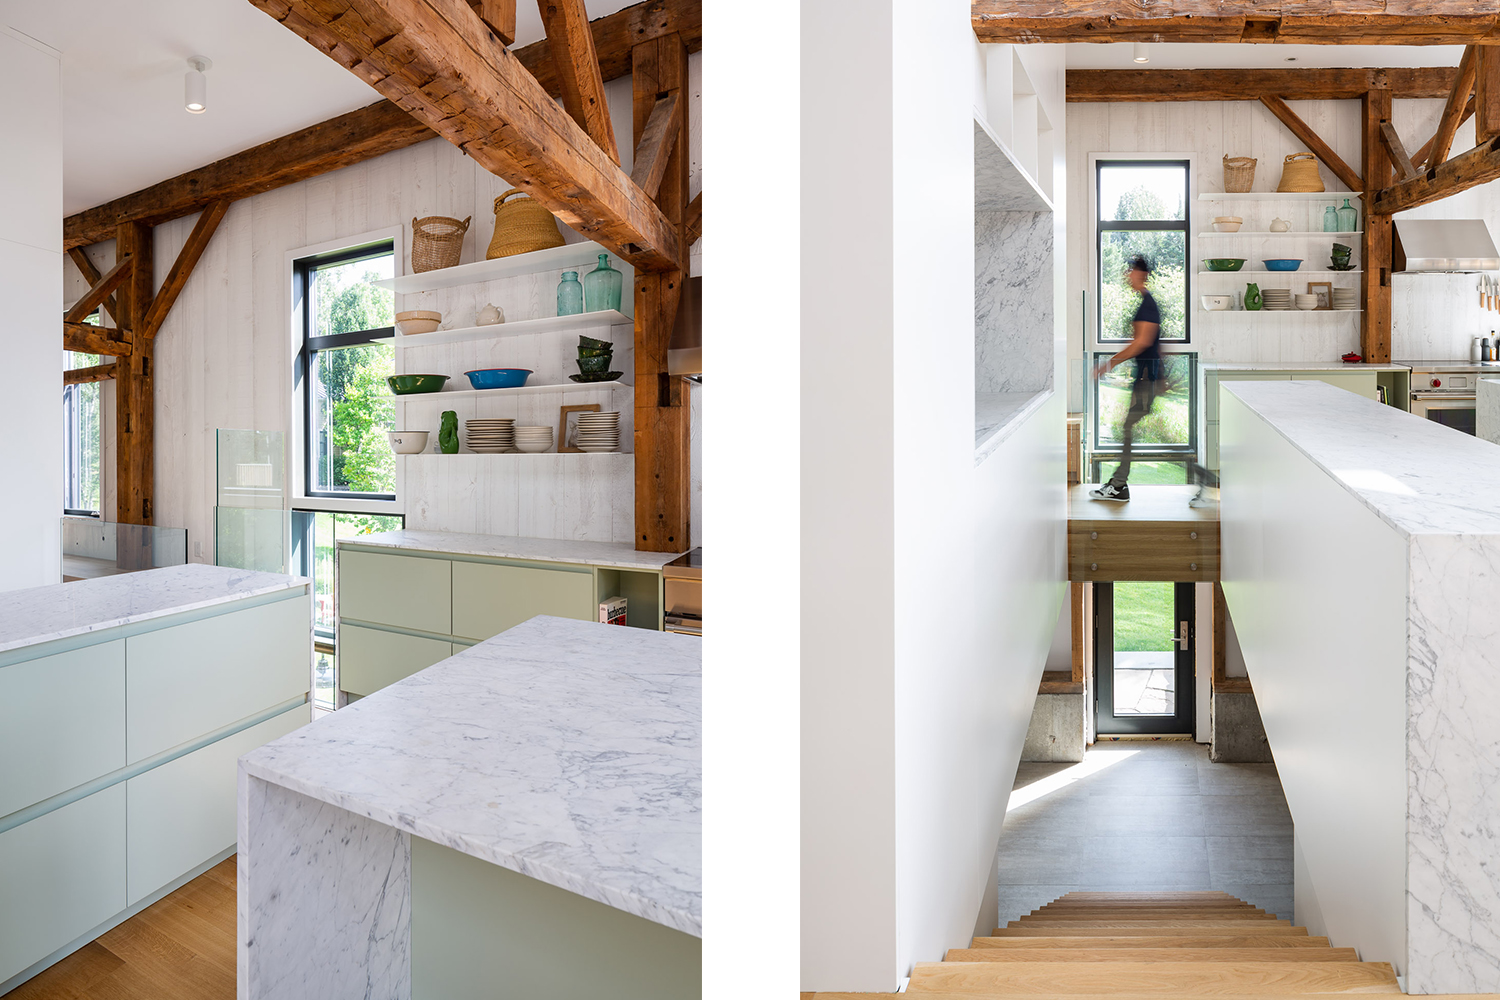 Kitchen with marble countertop bianco carrara. Old structure of apparent wood. Hemlock walls and white oak floor. Pale green lacquered box. Footbridge over the stairs